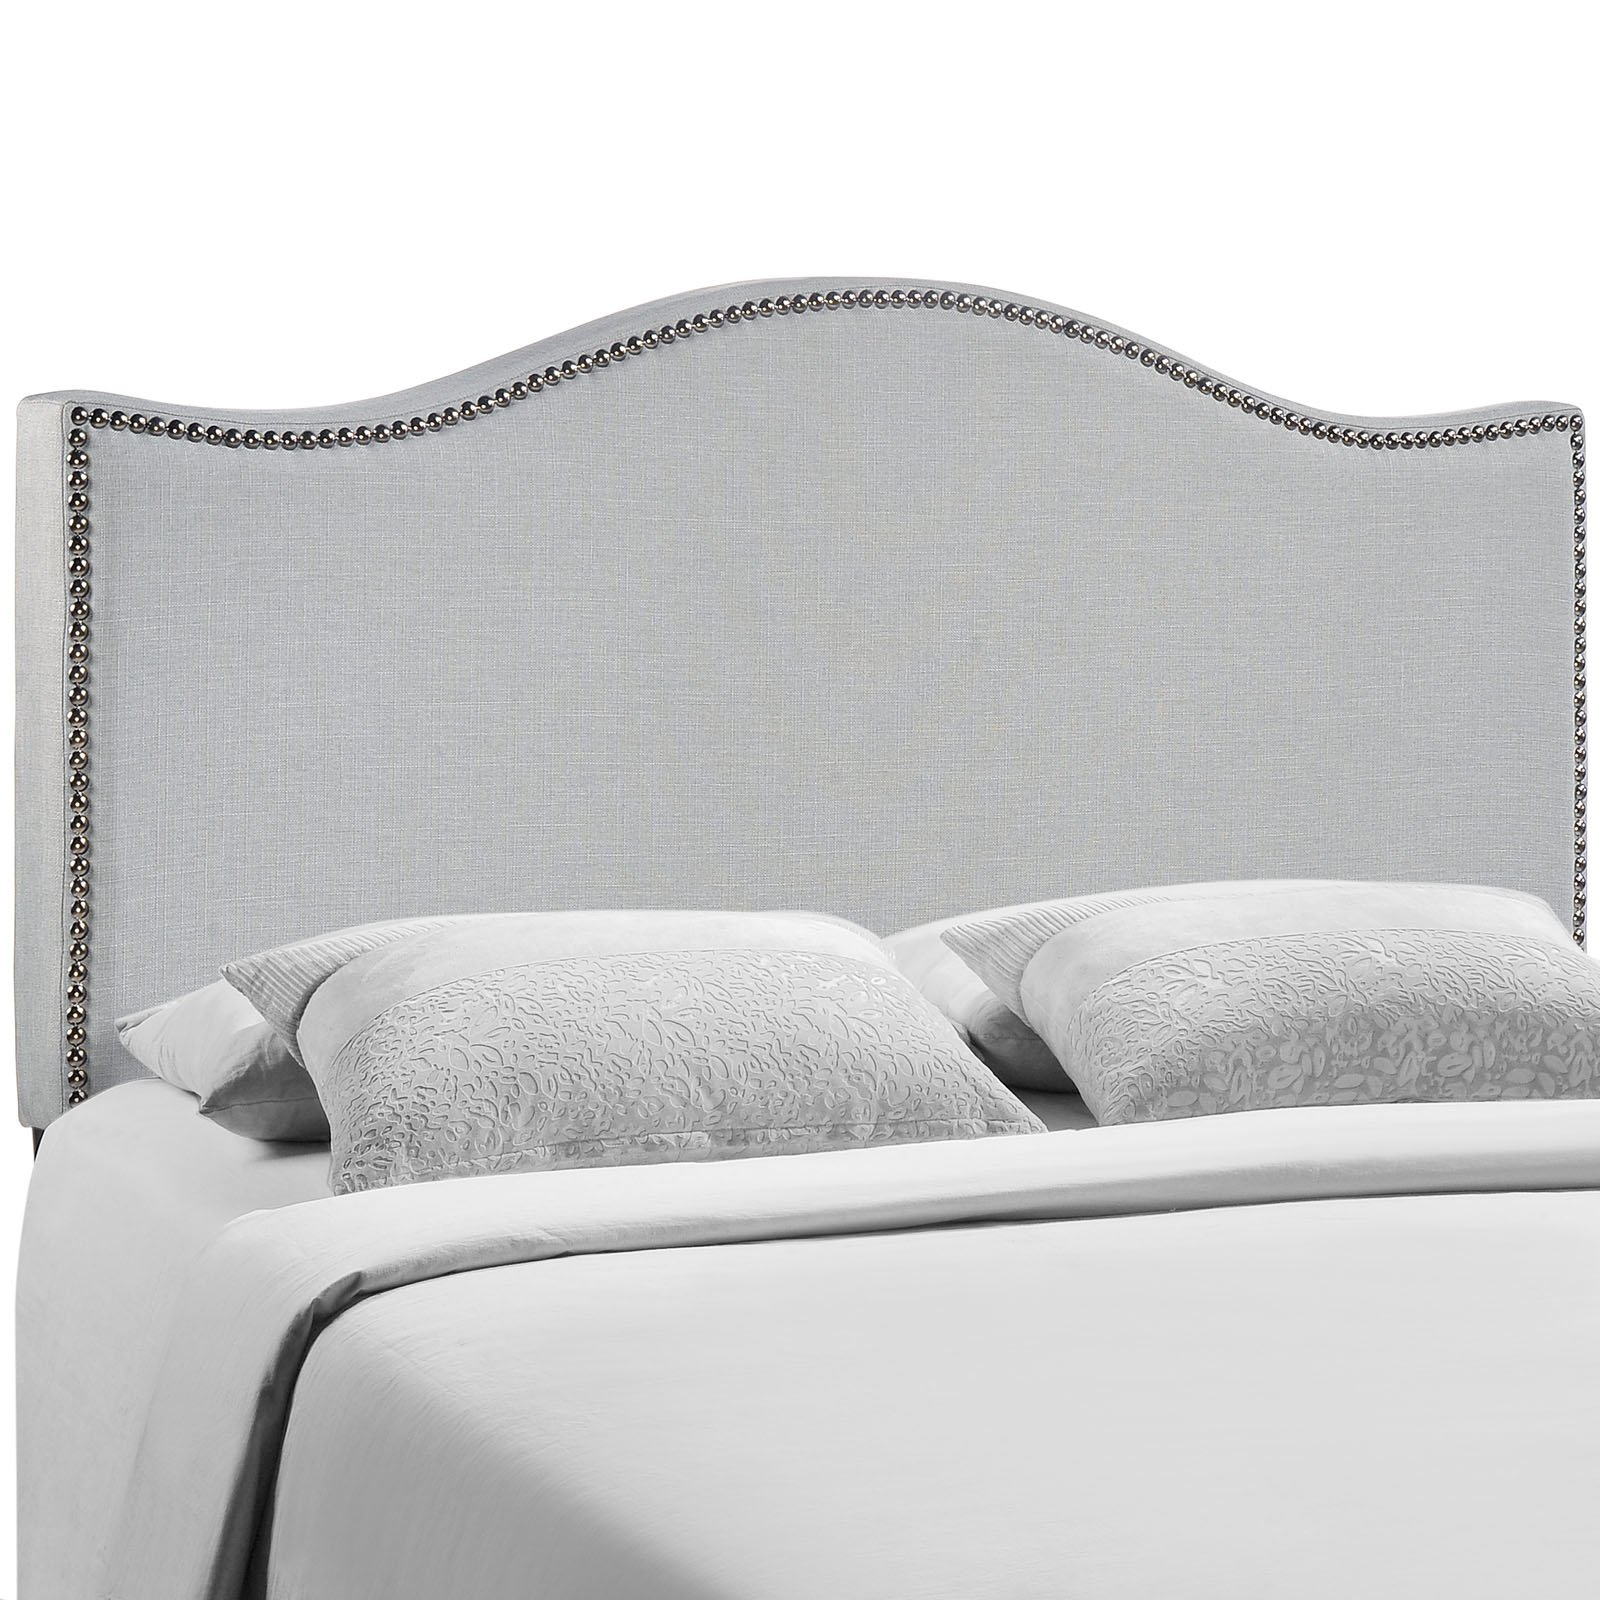 Modway Curl Linen Fabric Upholstered Queen Headboard with Nailhead Trim and Curved Shape in Gray by Modway